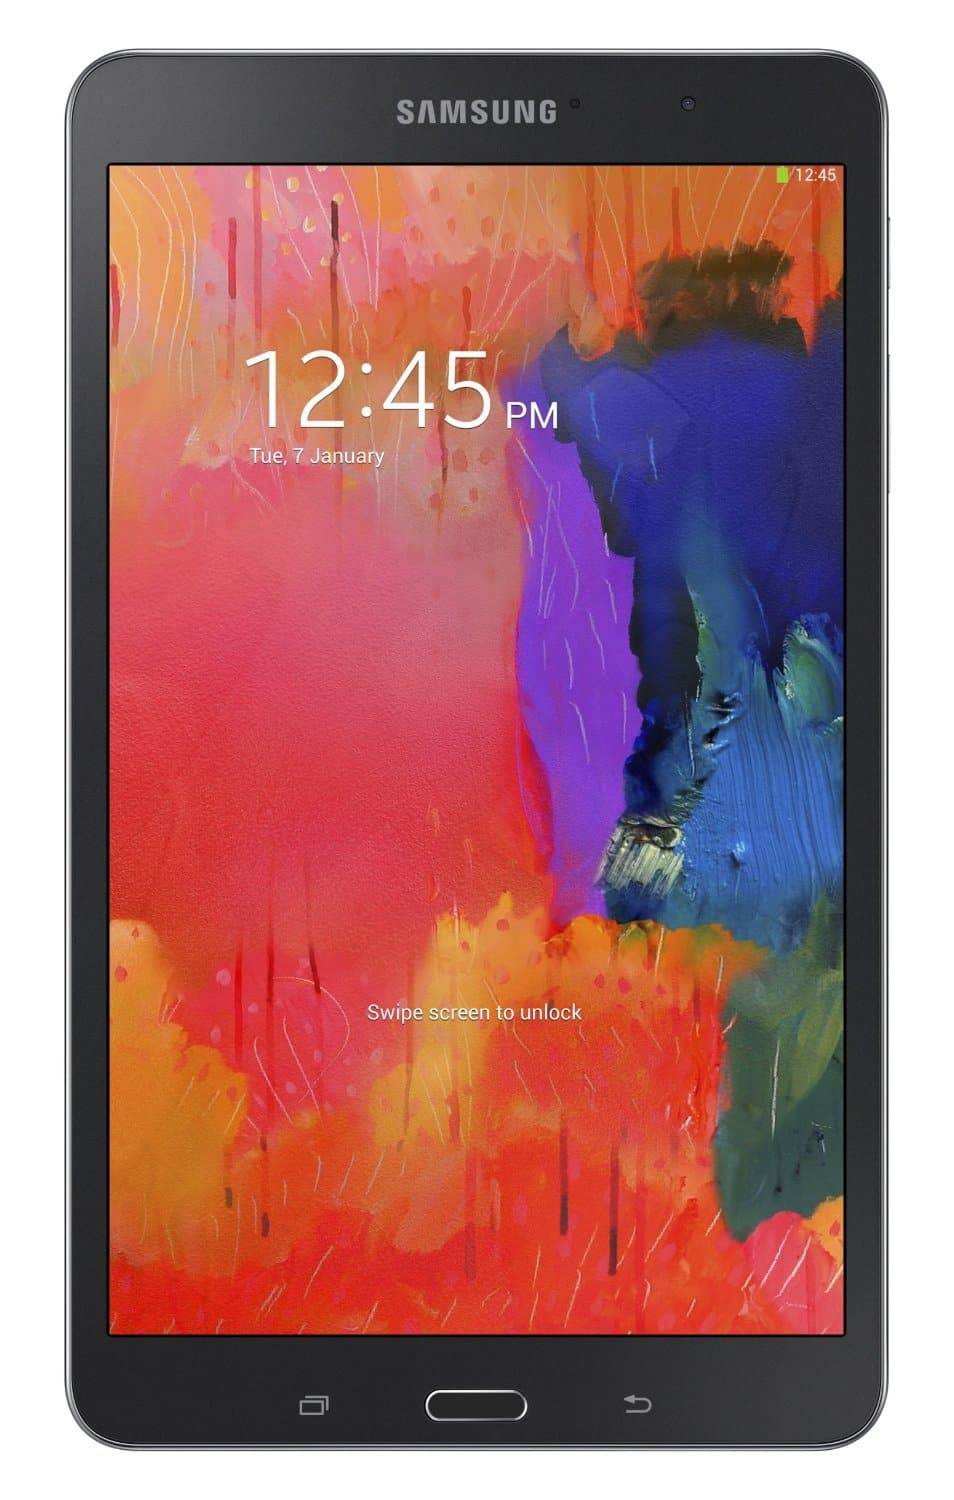 Samsung Galaxy Tab Pro 8.4 16GB for 200$ in Best Buy (possible 180$ with Movers Coupon?)